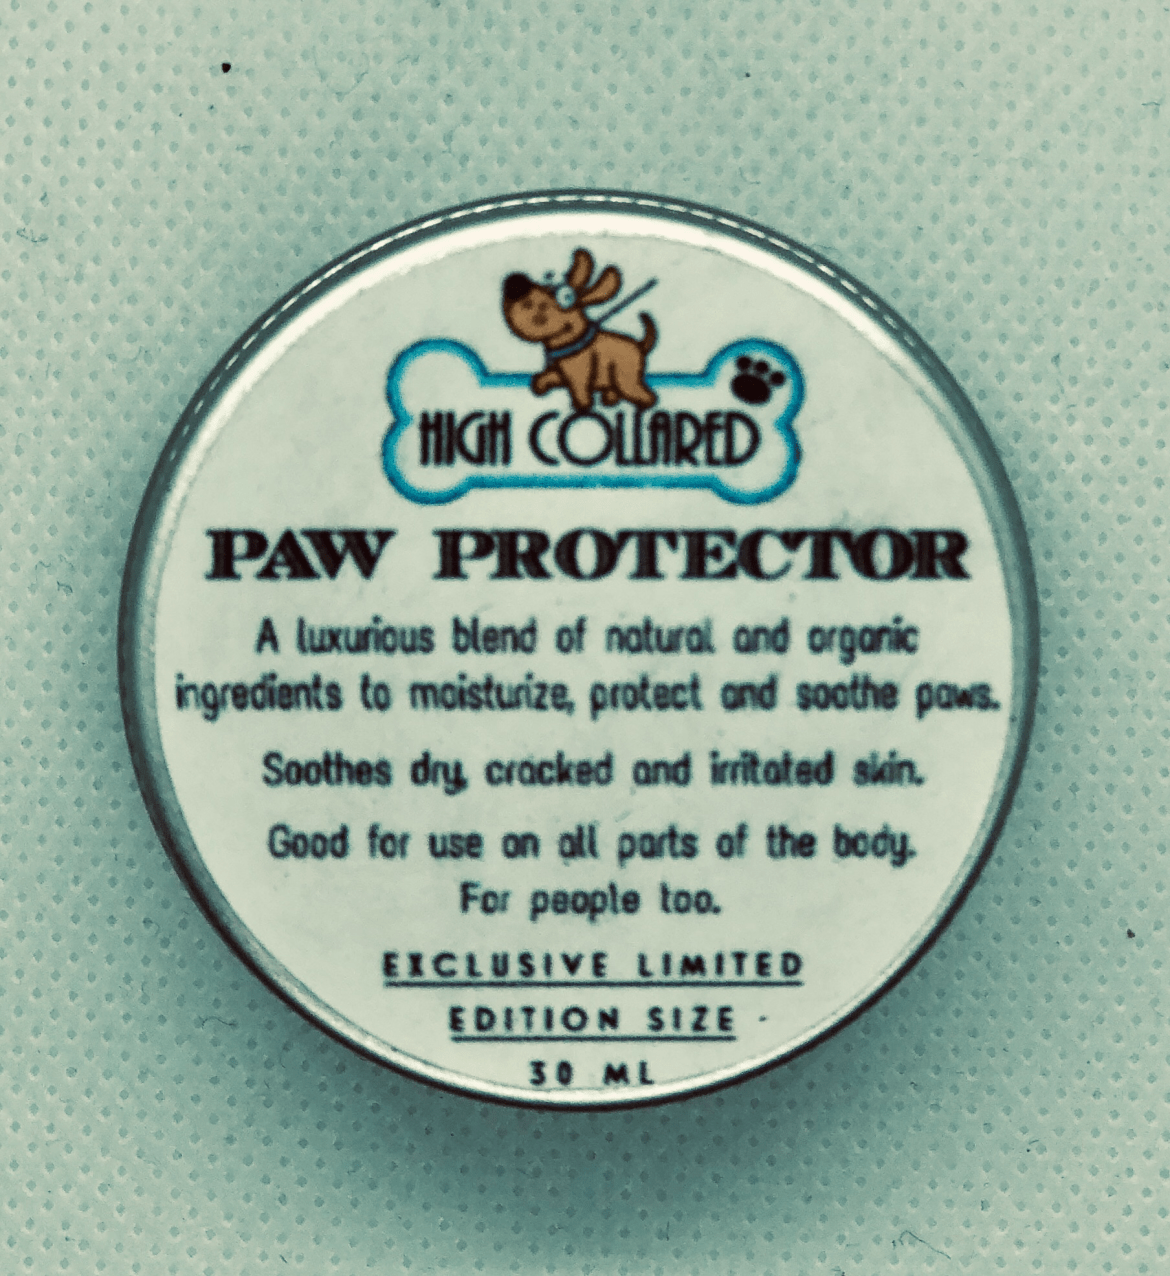 High Collared Paw Protecter 00017